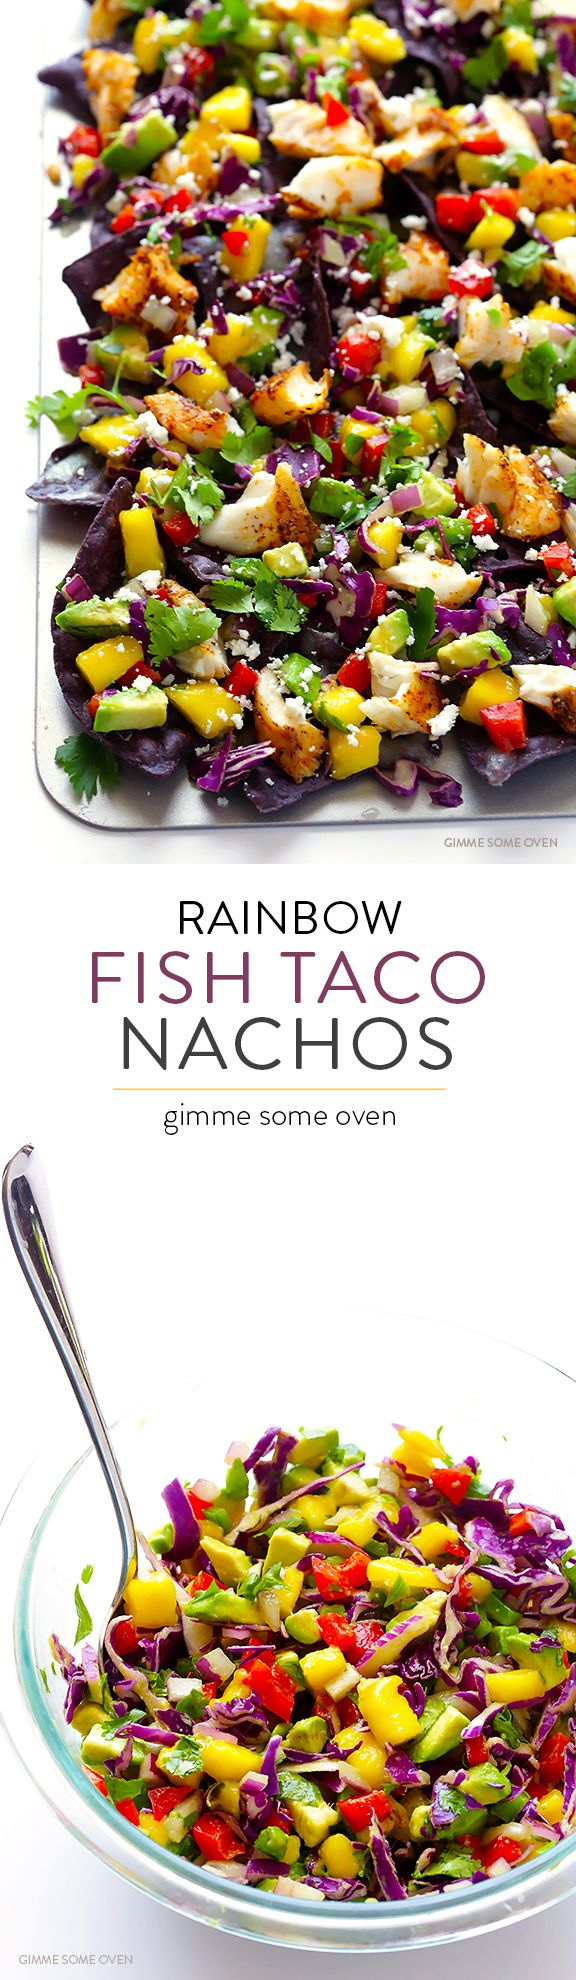 Rainbow Fish Taco Nachos -- easy to make, full of colorful tasty ingredients, and guaranteed to be the hit of the party!   gimmesomeoven.com